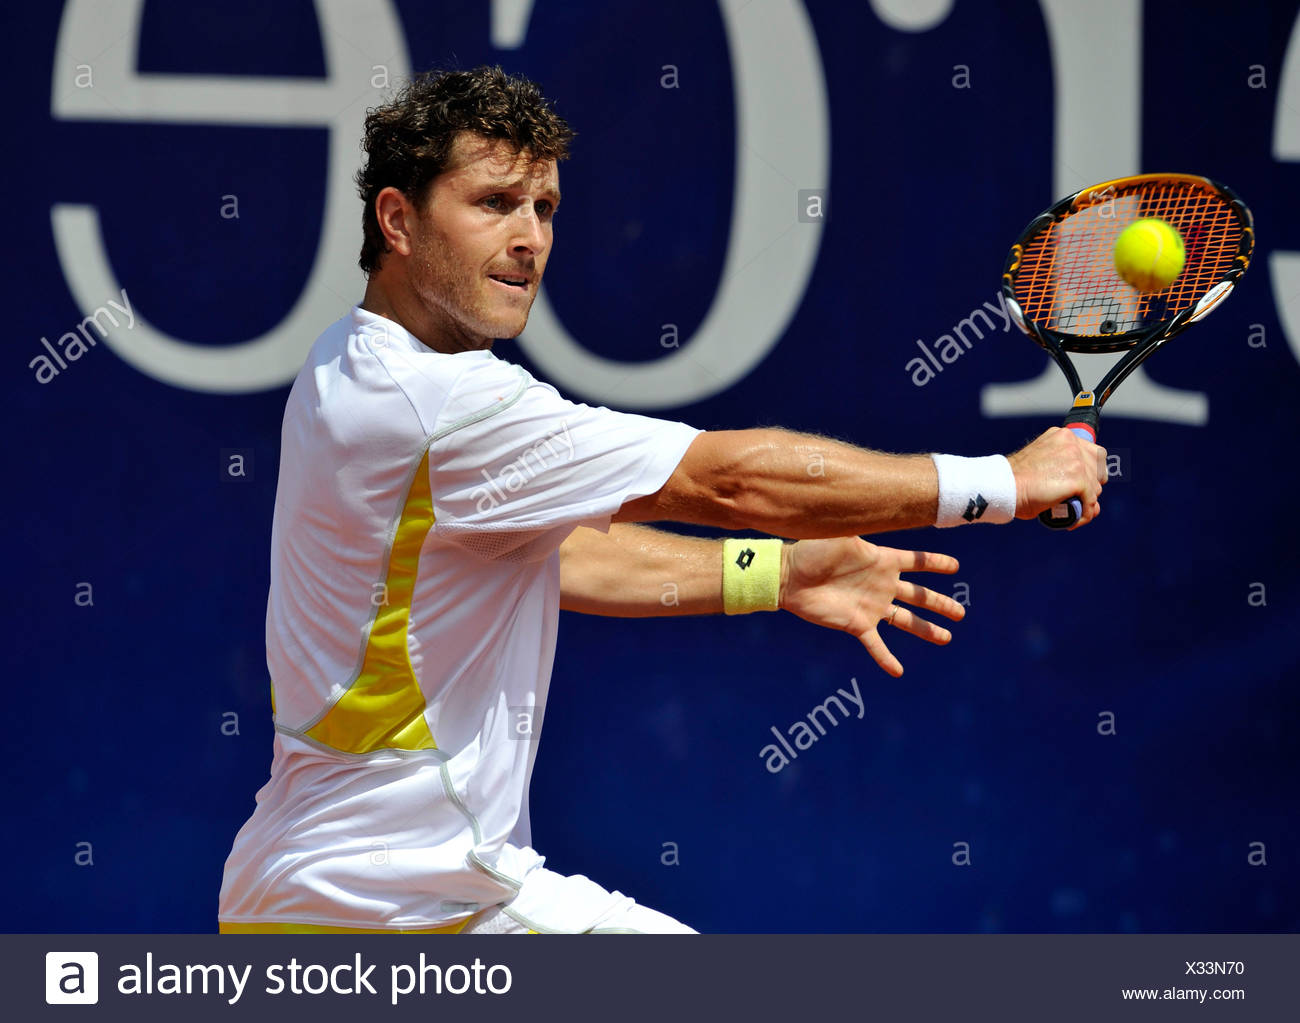 Michael Berrer, Germany, Mercedes Cup Stuttgart 2009, Baden-Wuerttemberg, Germany, Europe - Stock Image